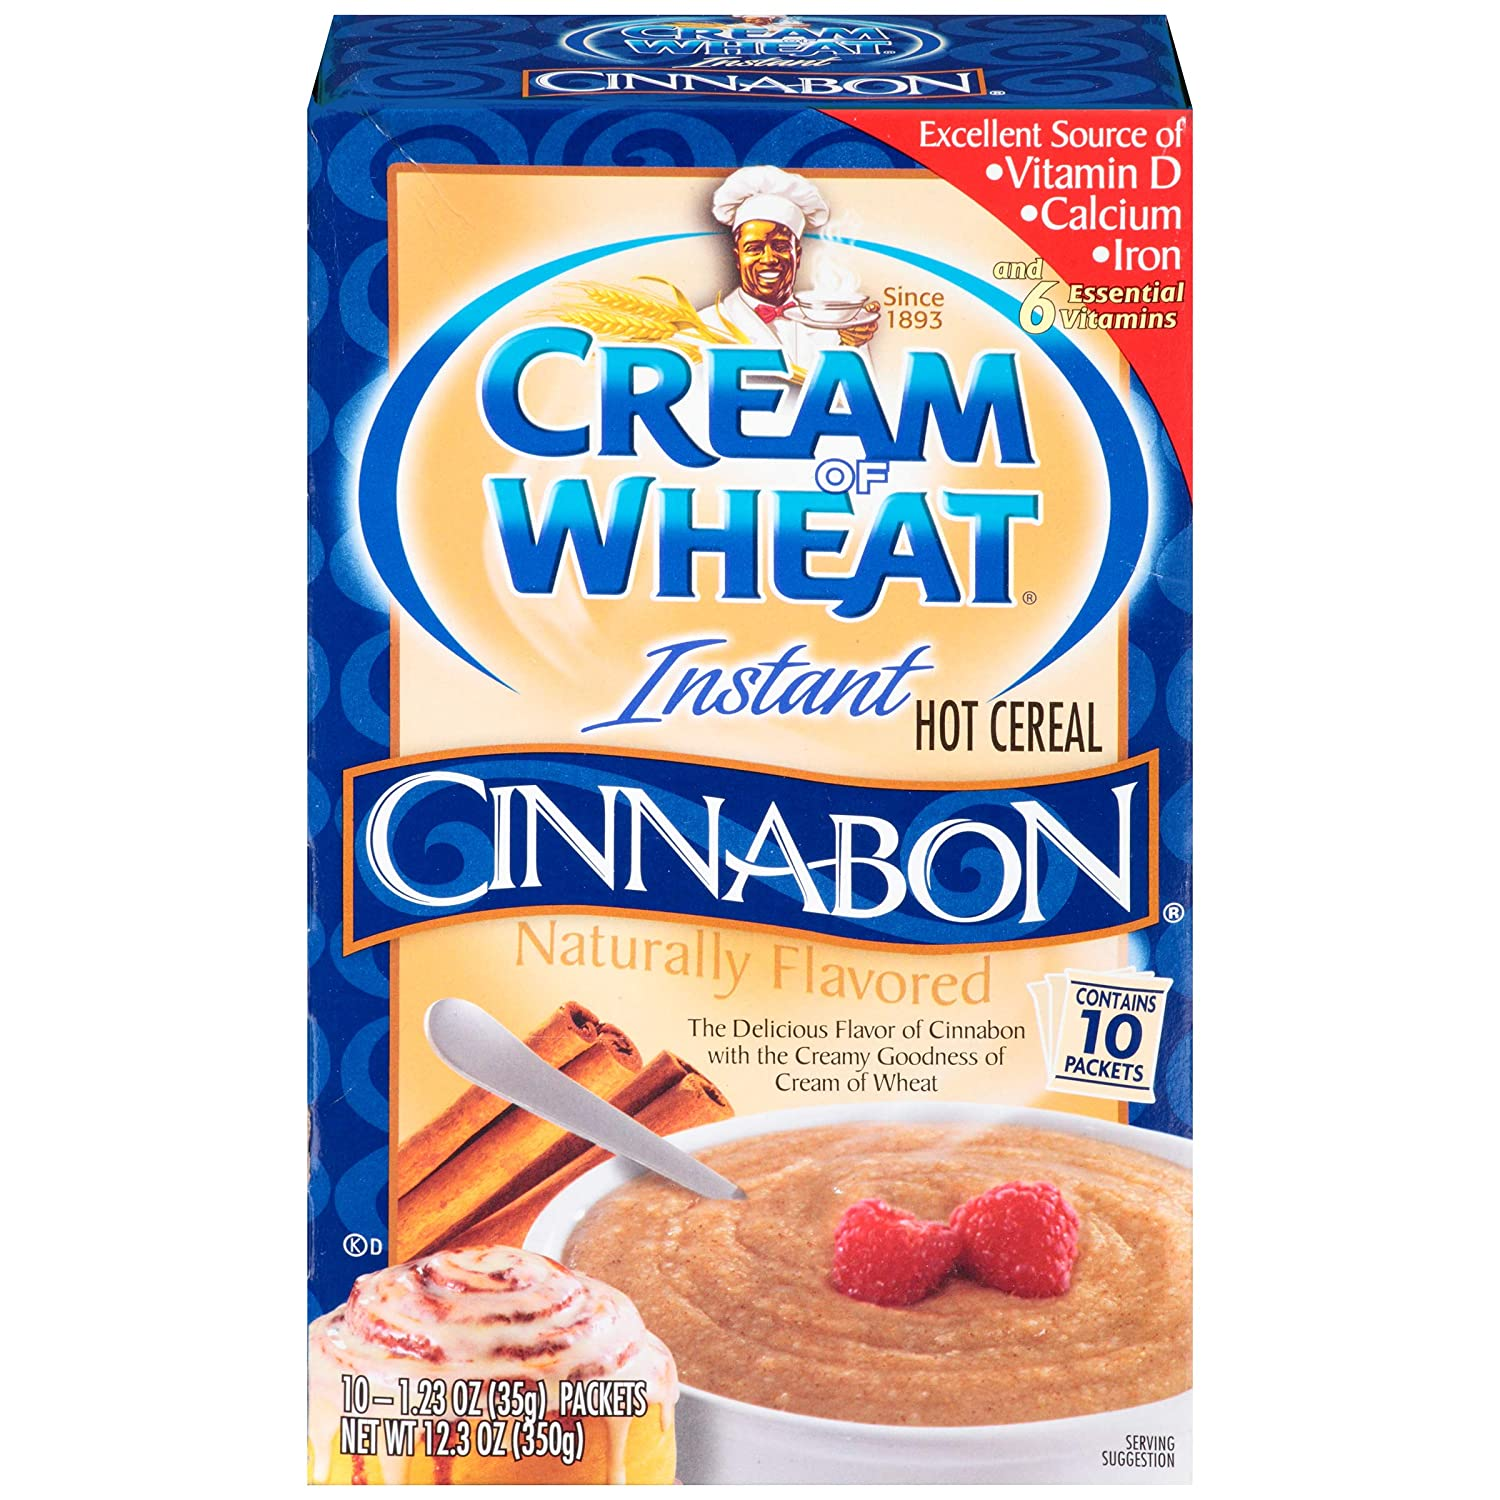 Cream of Wheat Instant Hot Cereal 10 1.23 Ounce Popular standard Pack Cinnabon Sale special price